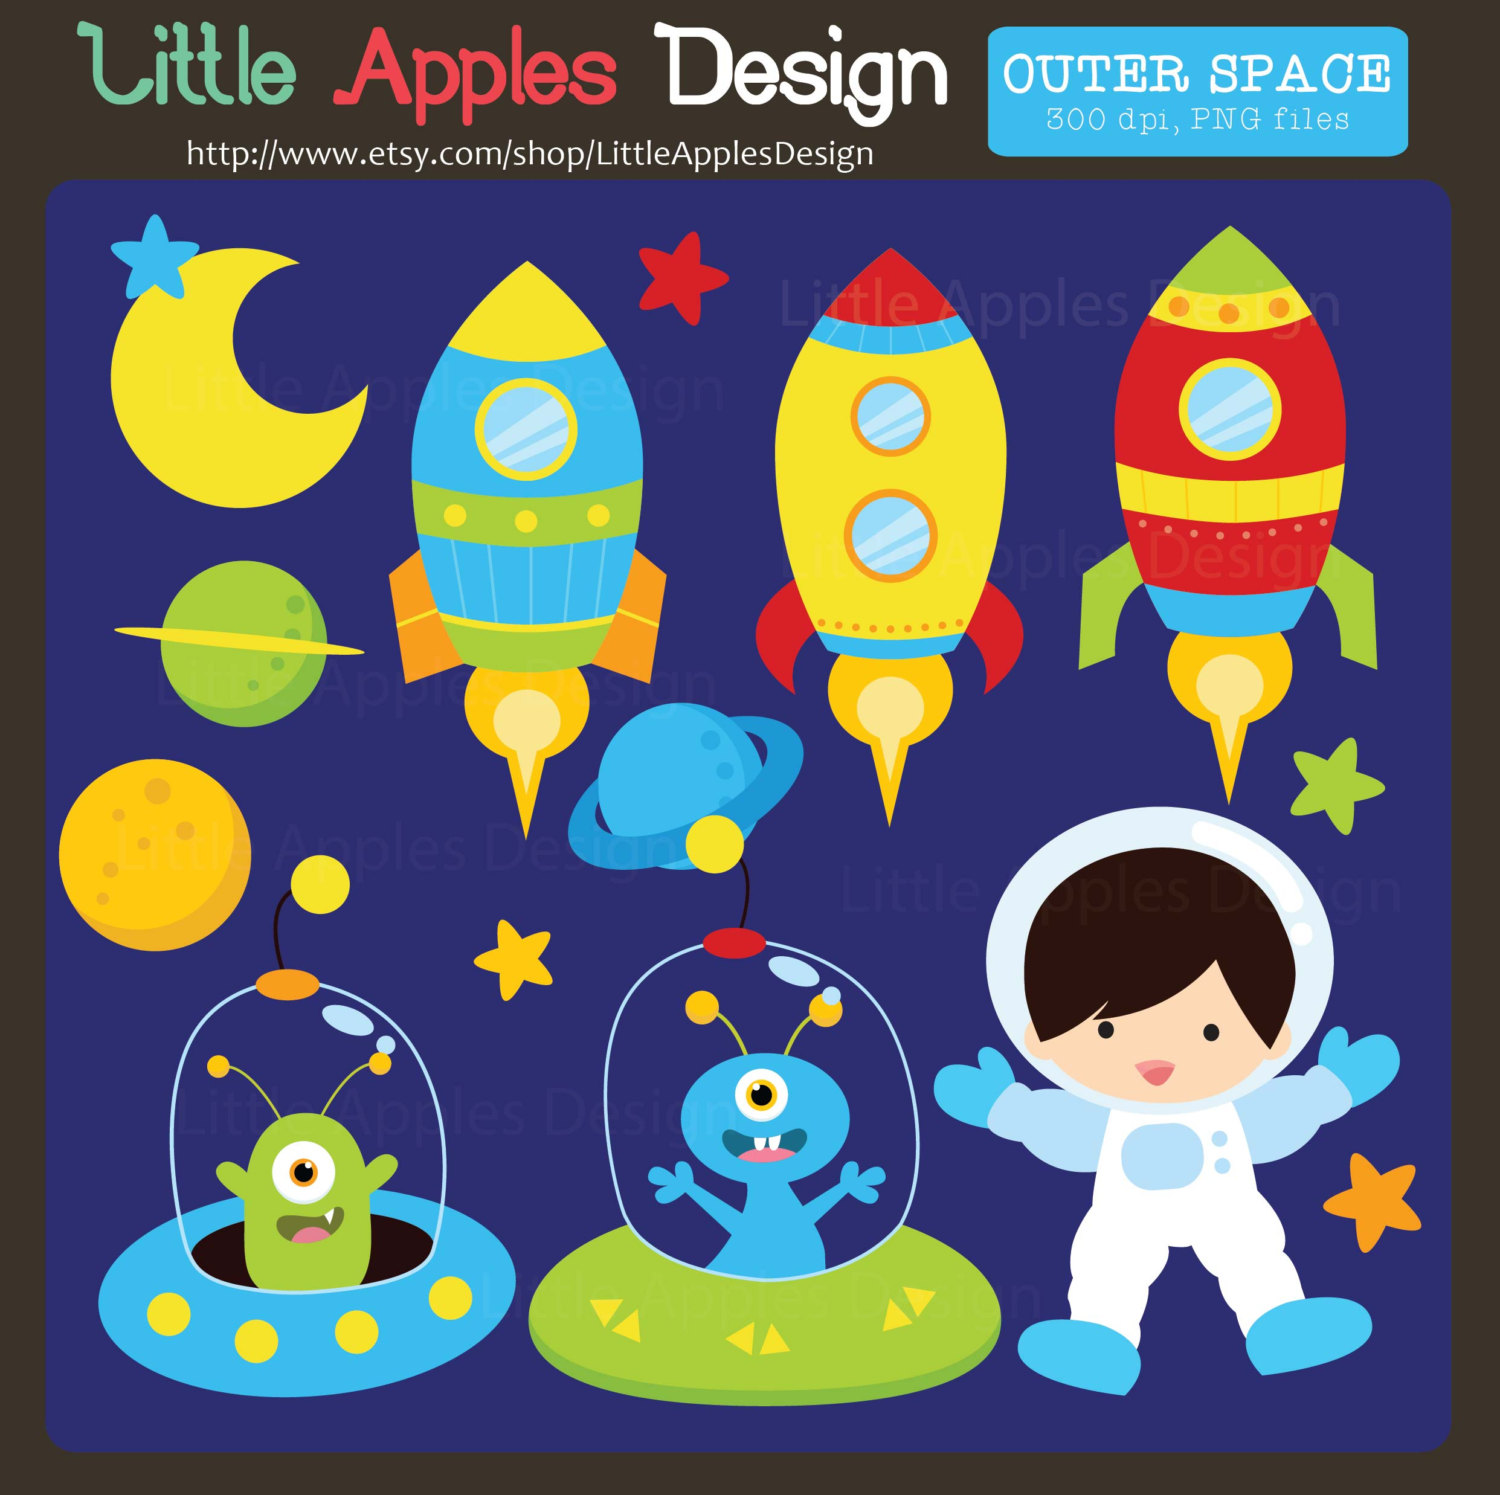 Space Clip Art  Space Images  MyCuteGraphics